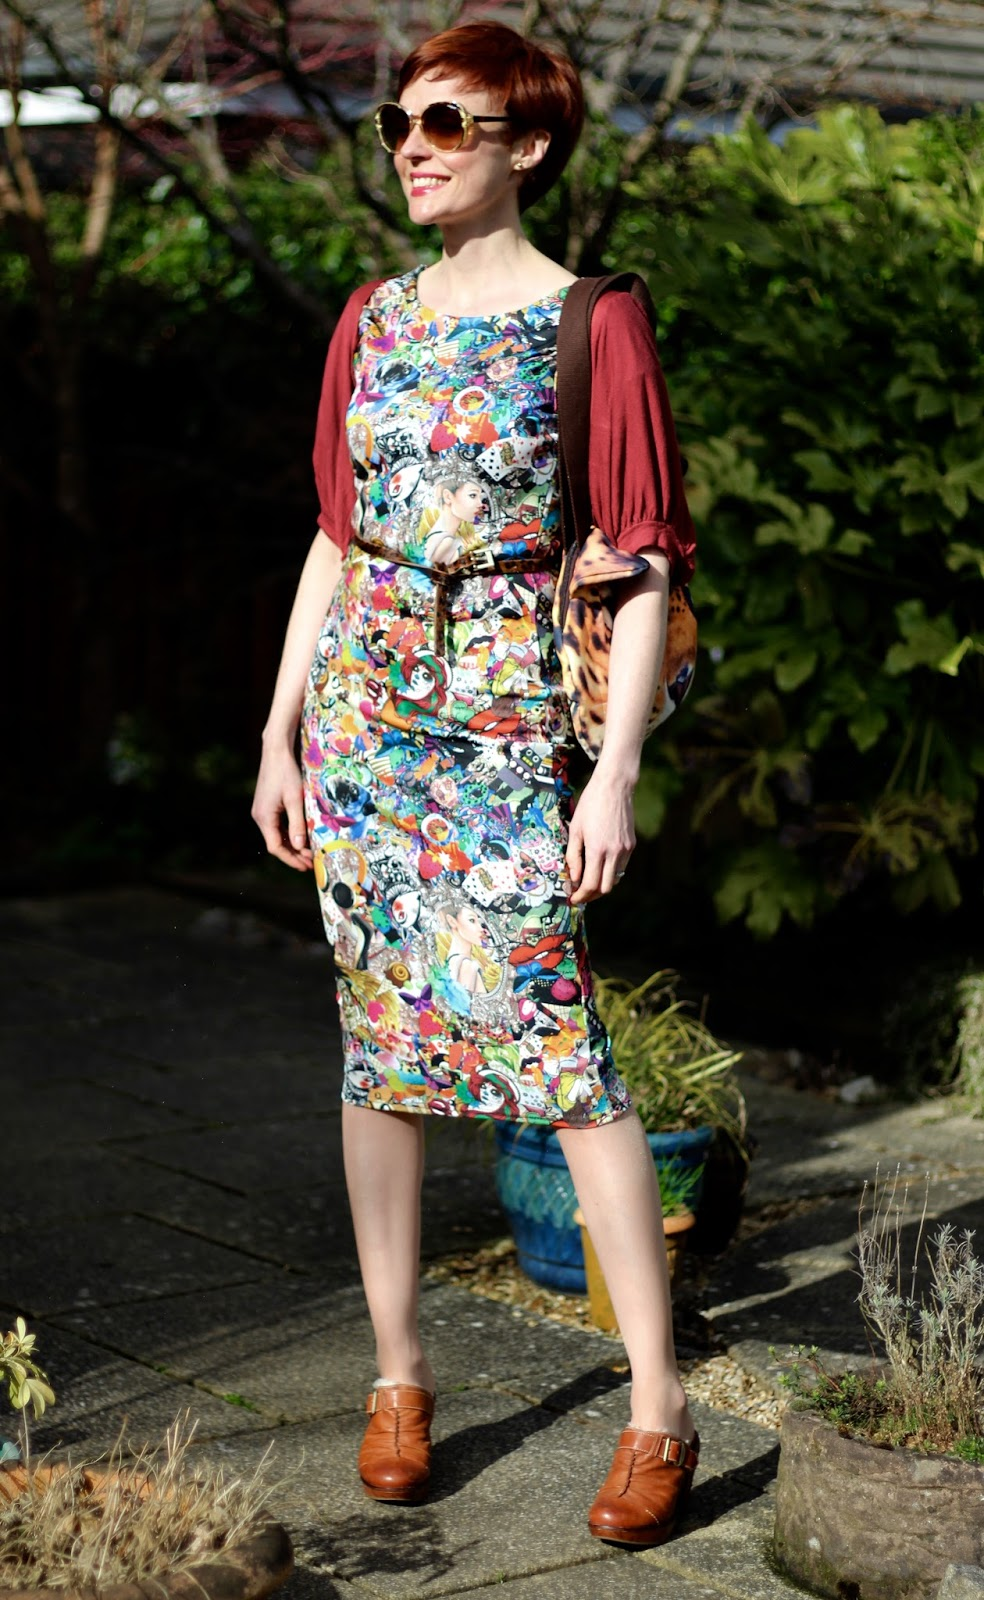 Fake Fabulous | PPP 6 | Graphic Patterned midi dress, leopard bag and belt, Maroon shrug, sheepskin mules.